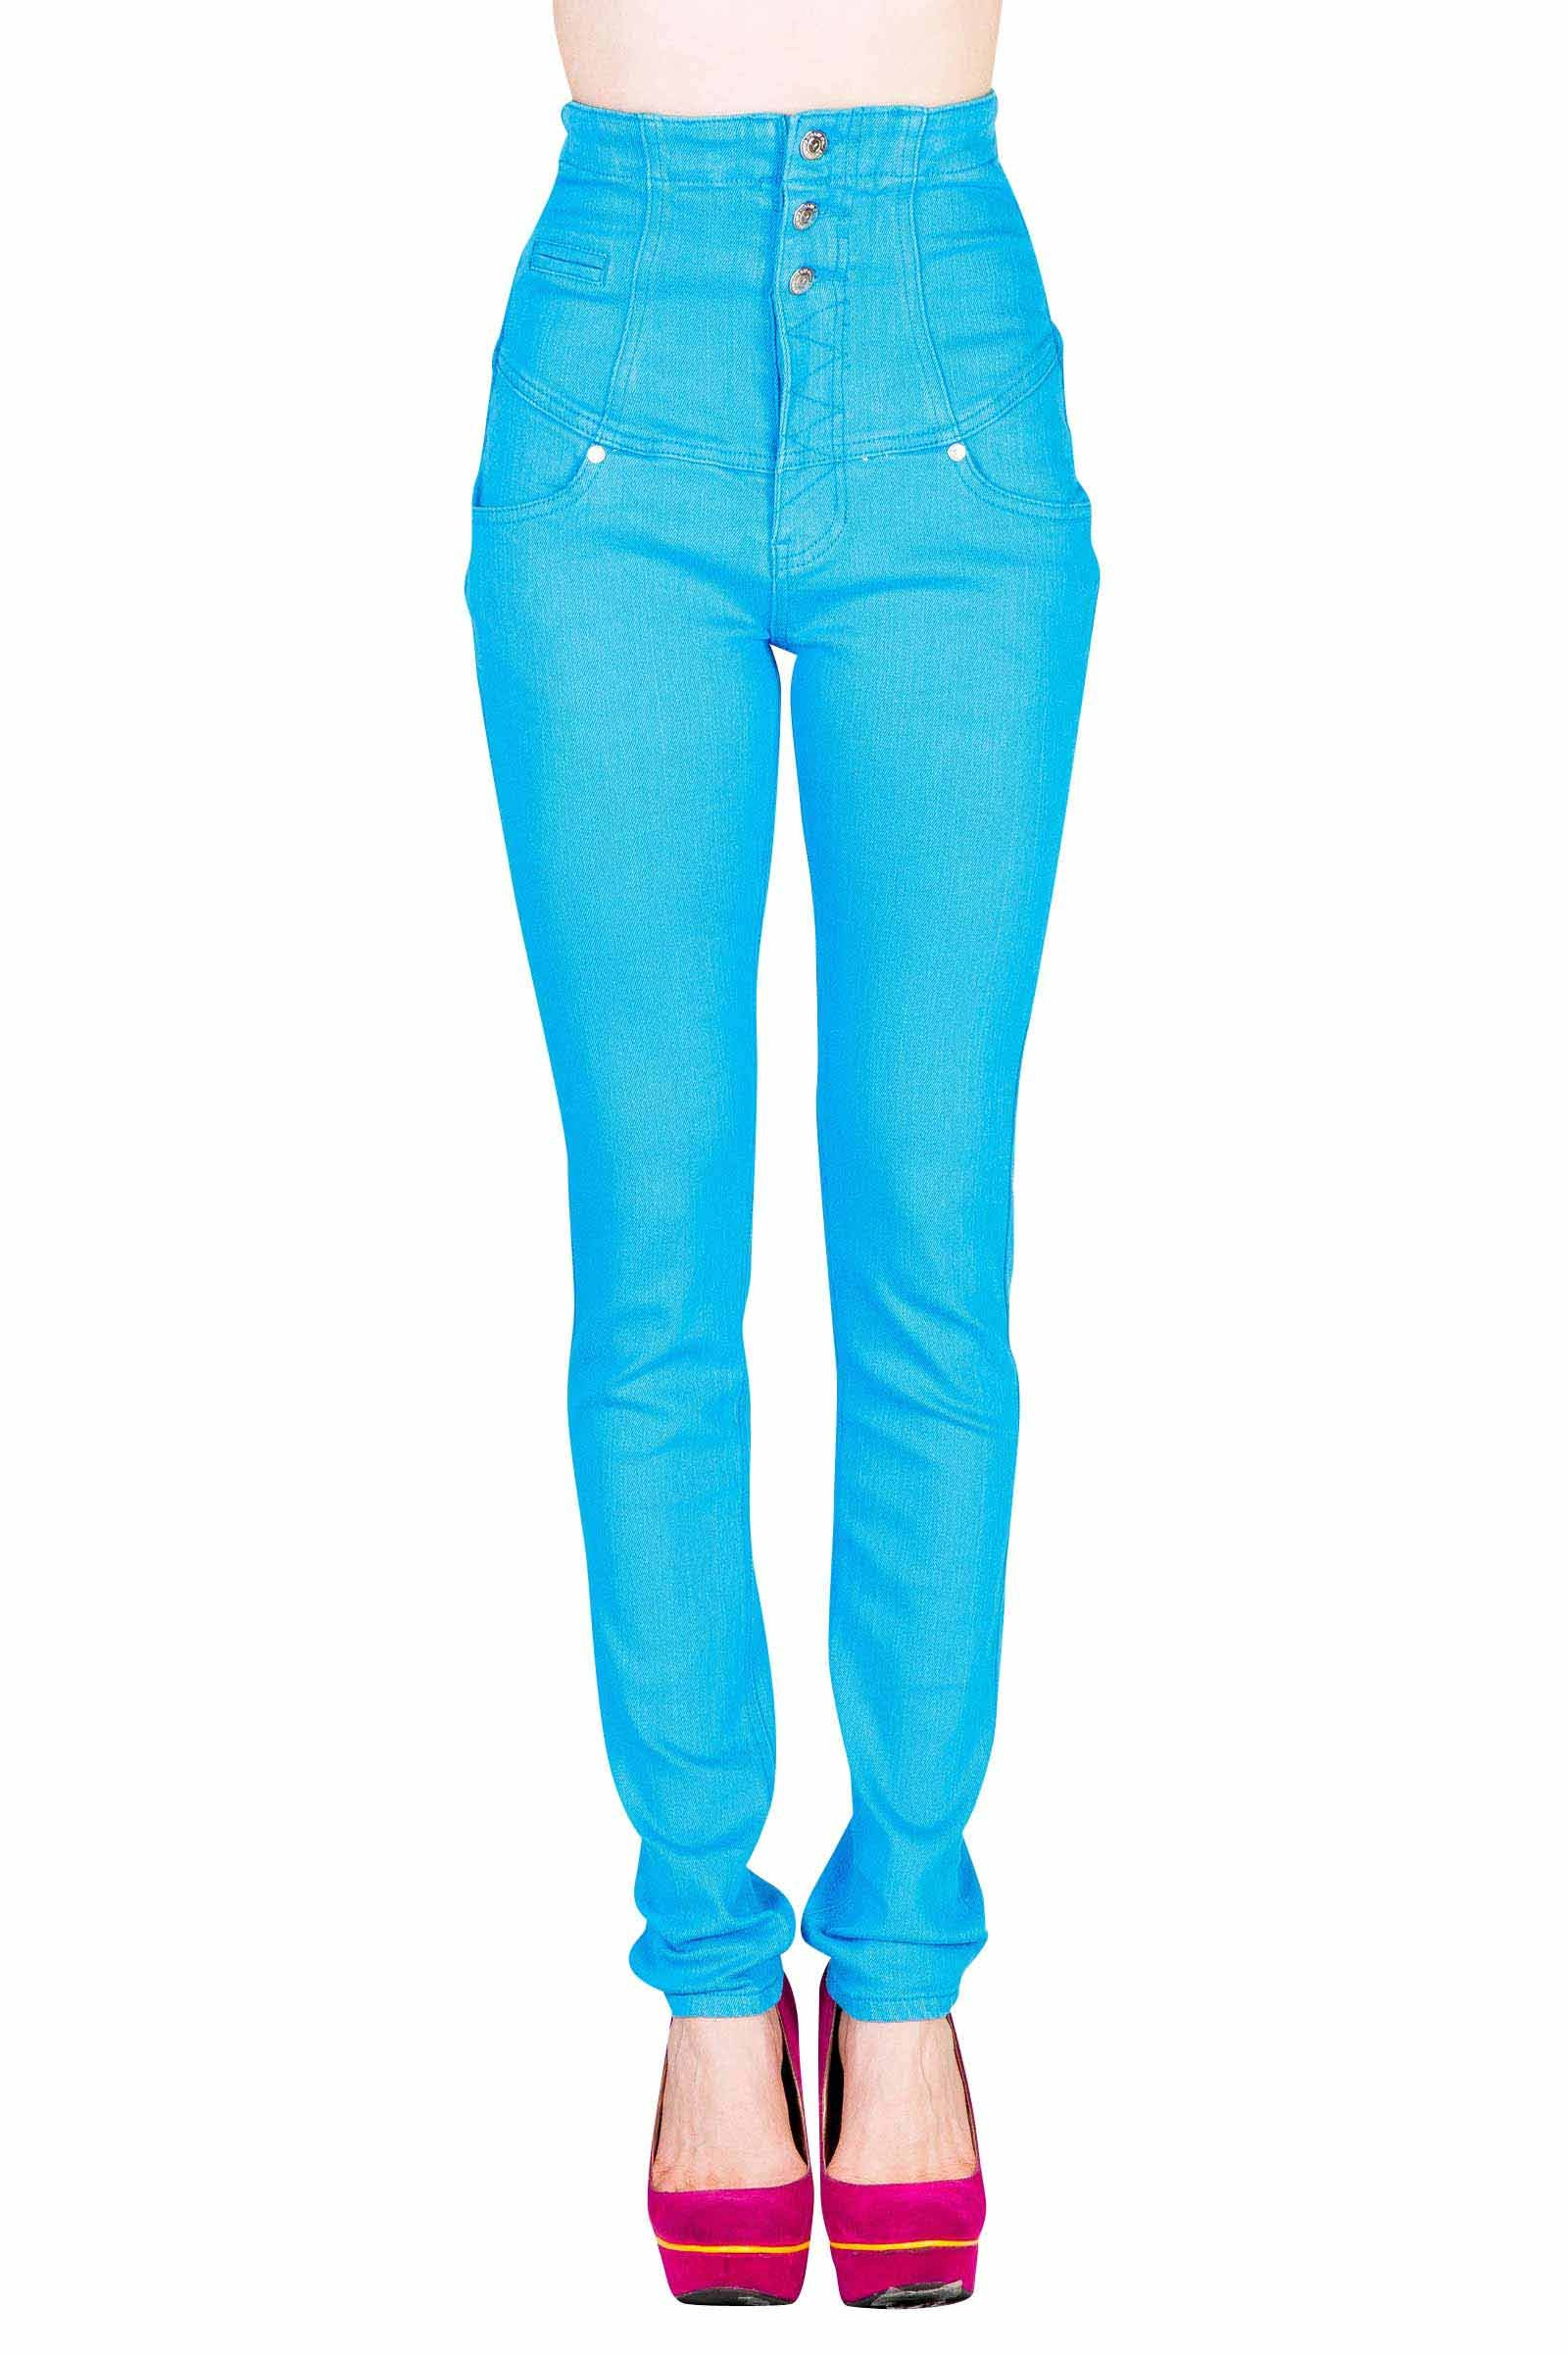 VIRGIN ONLY Women's Basic 5-Pocket Style Color Skinny Jeans (Turquoise, Size 9)